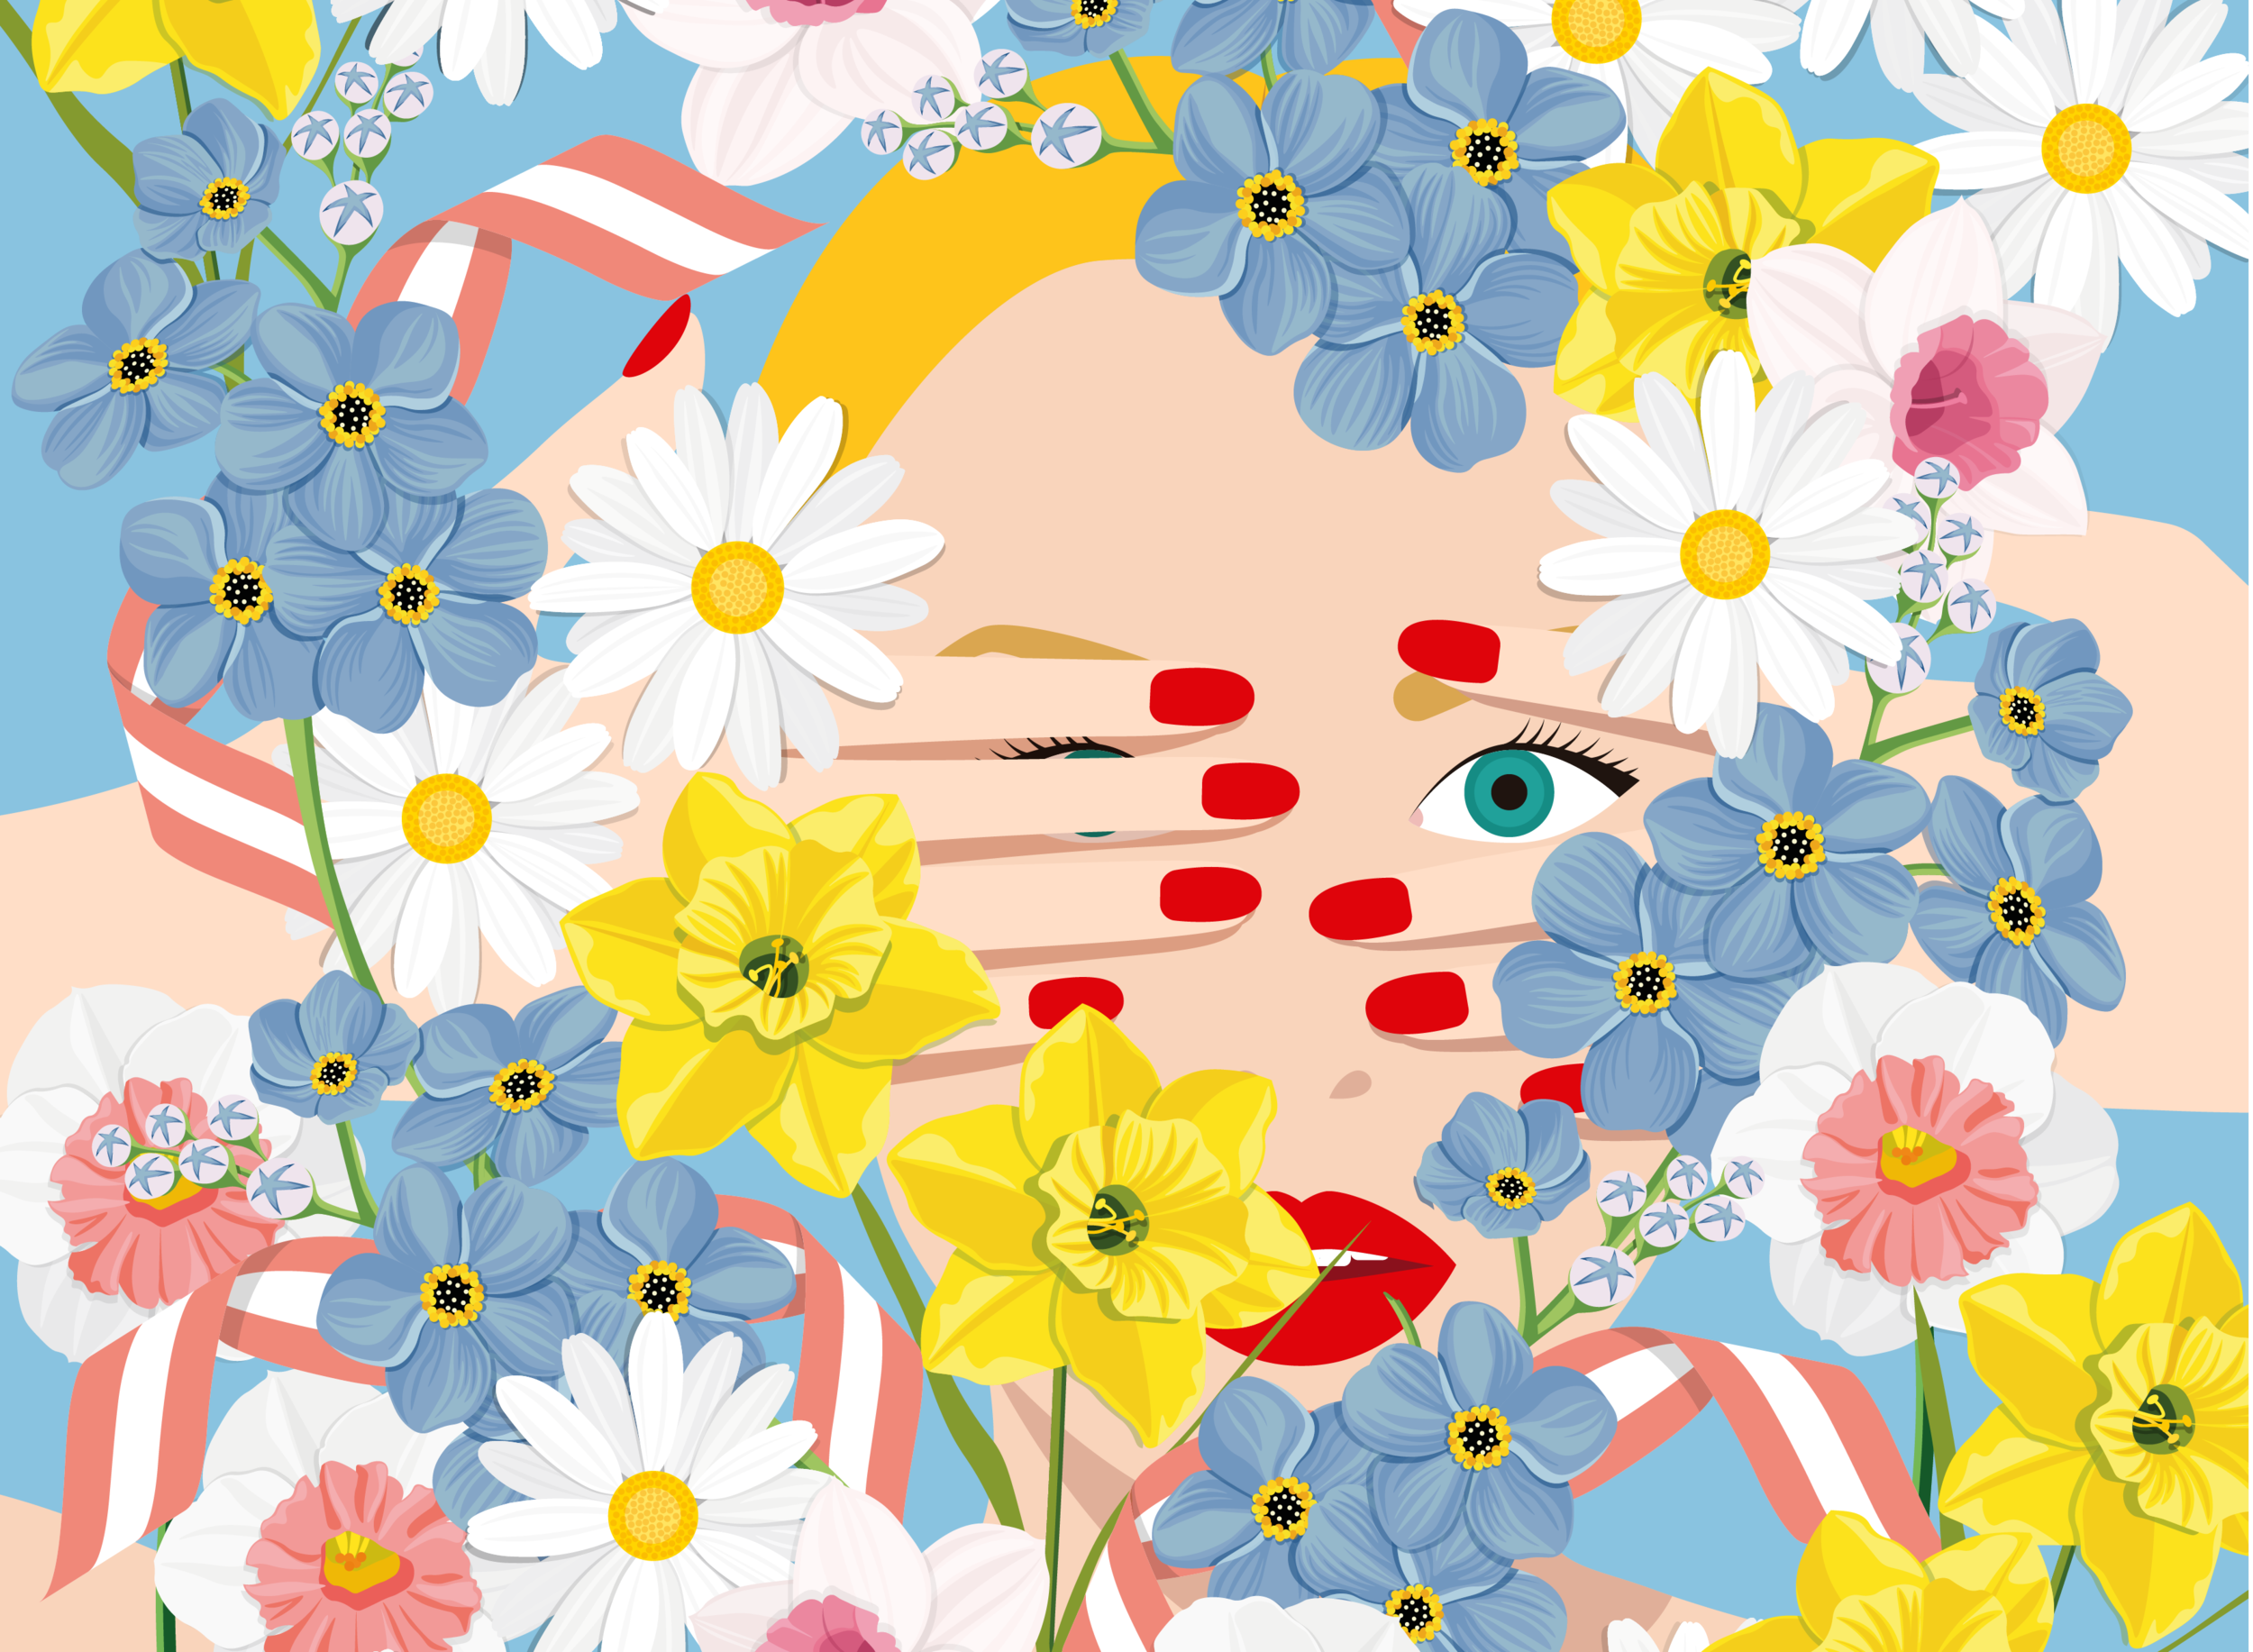 Woman_and_Flowers_30x22-01.png